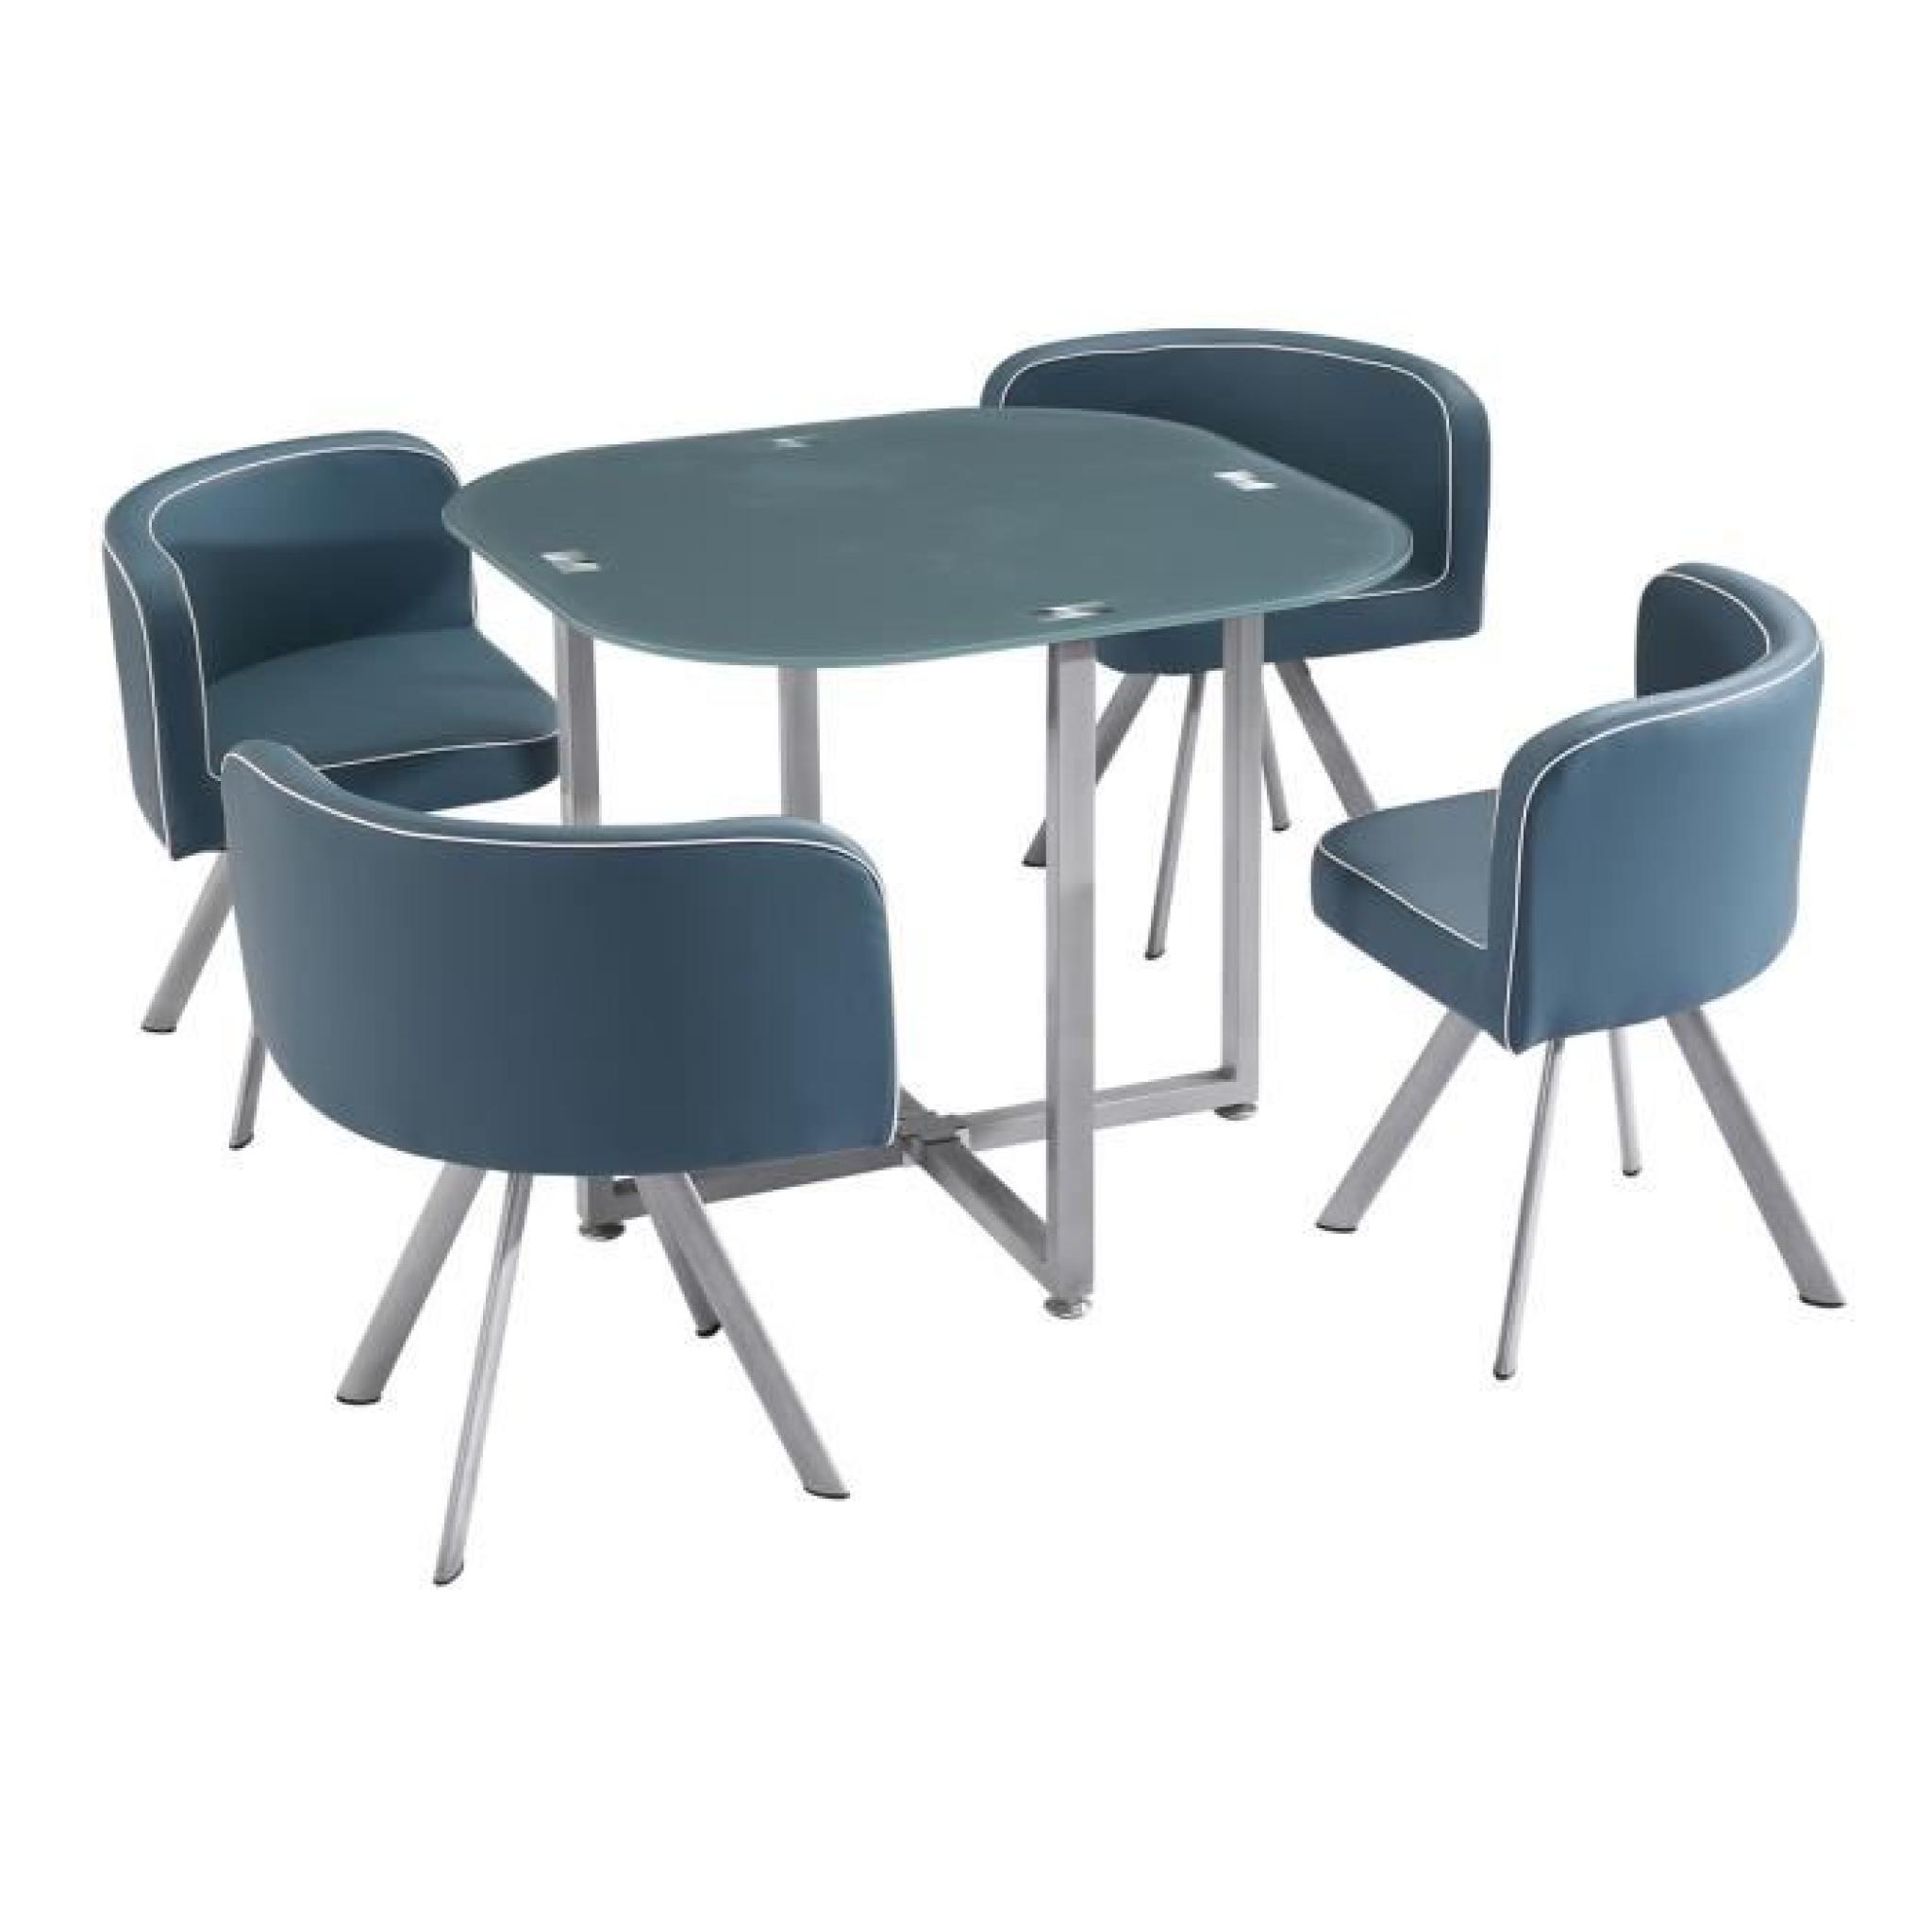 Ensemble table a manger et chaise pas cher maison design for Table 6 chaises pas cher